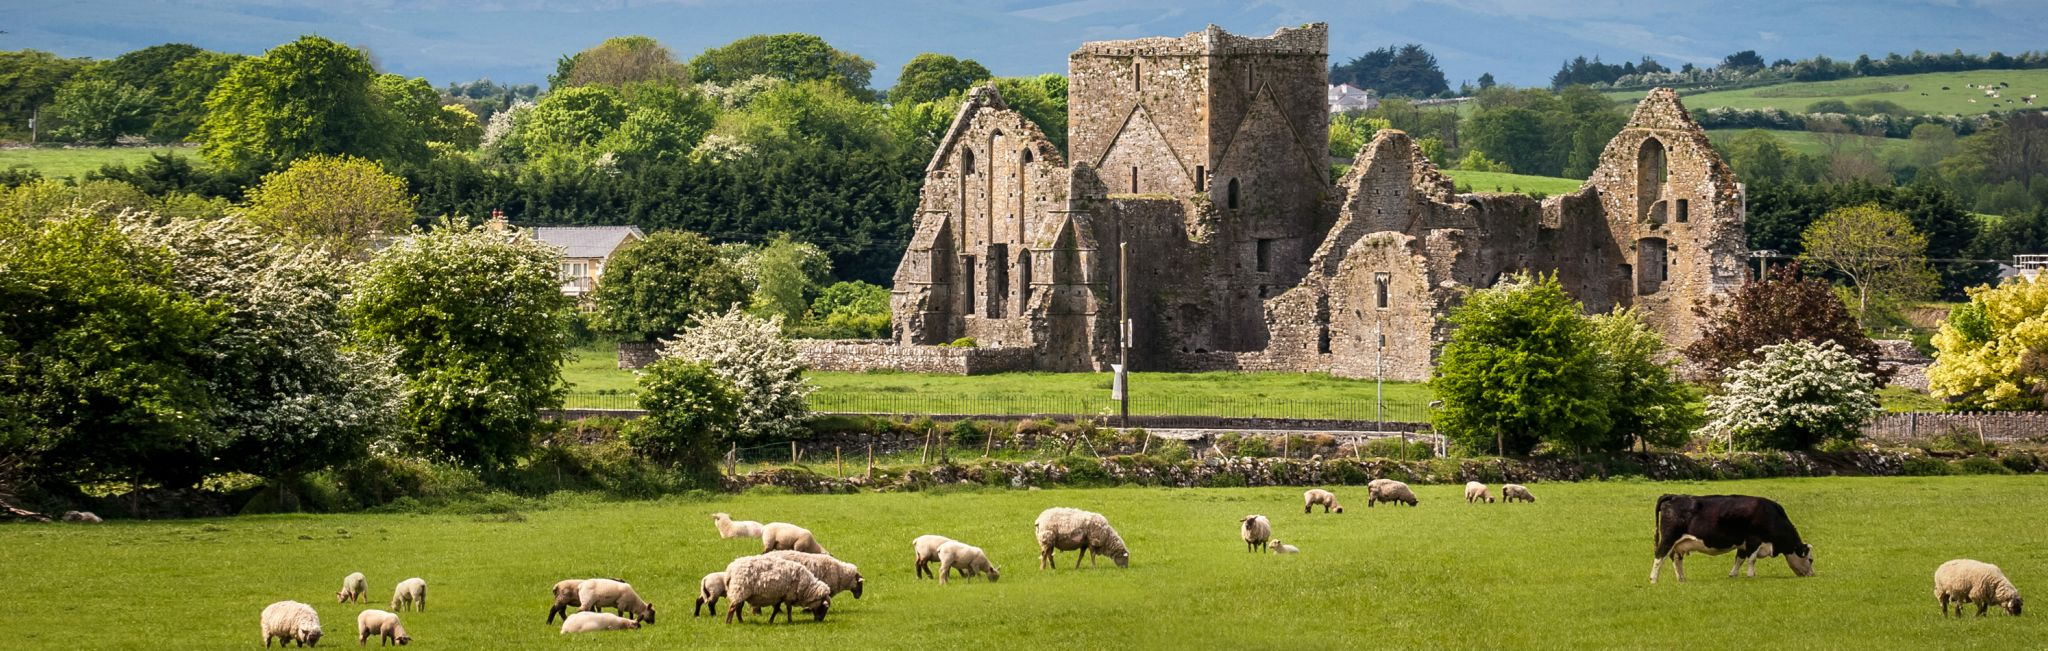 Best Ireland Tours Vacations Travel Packages - Ireland vacations